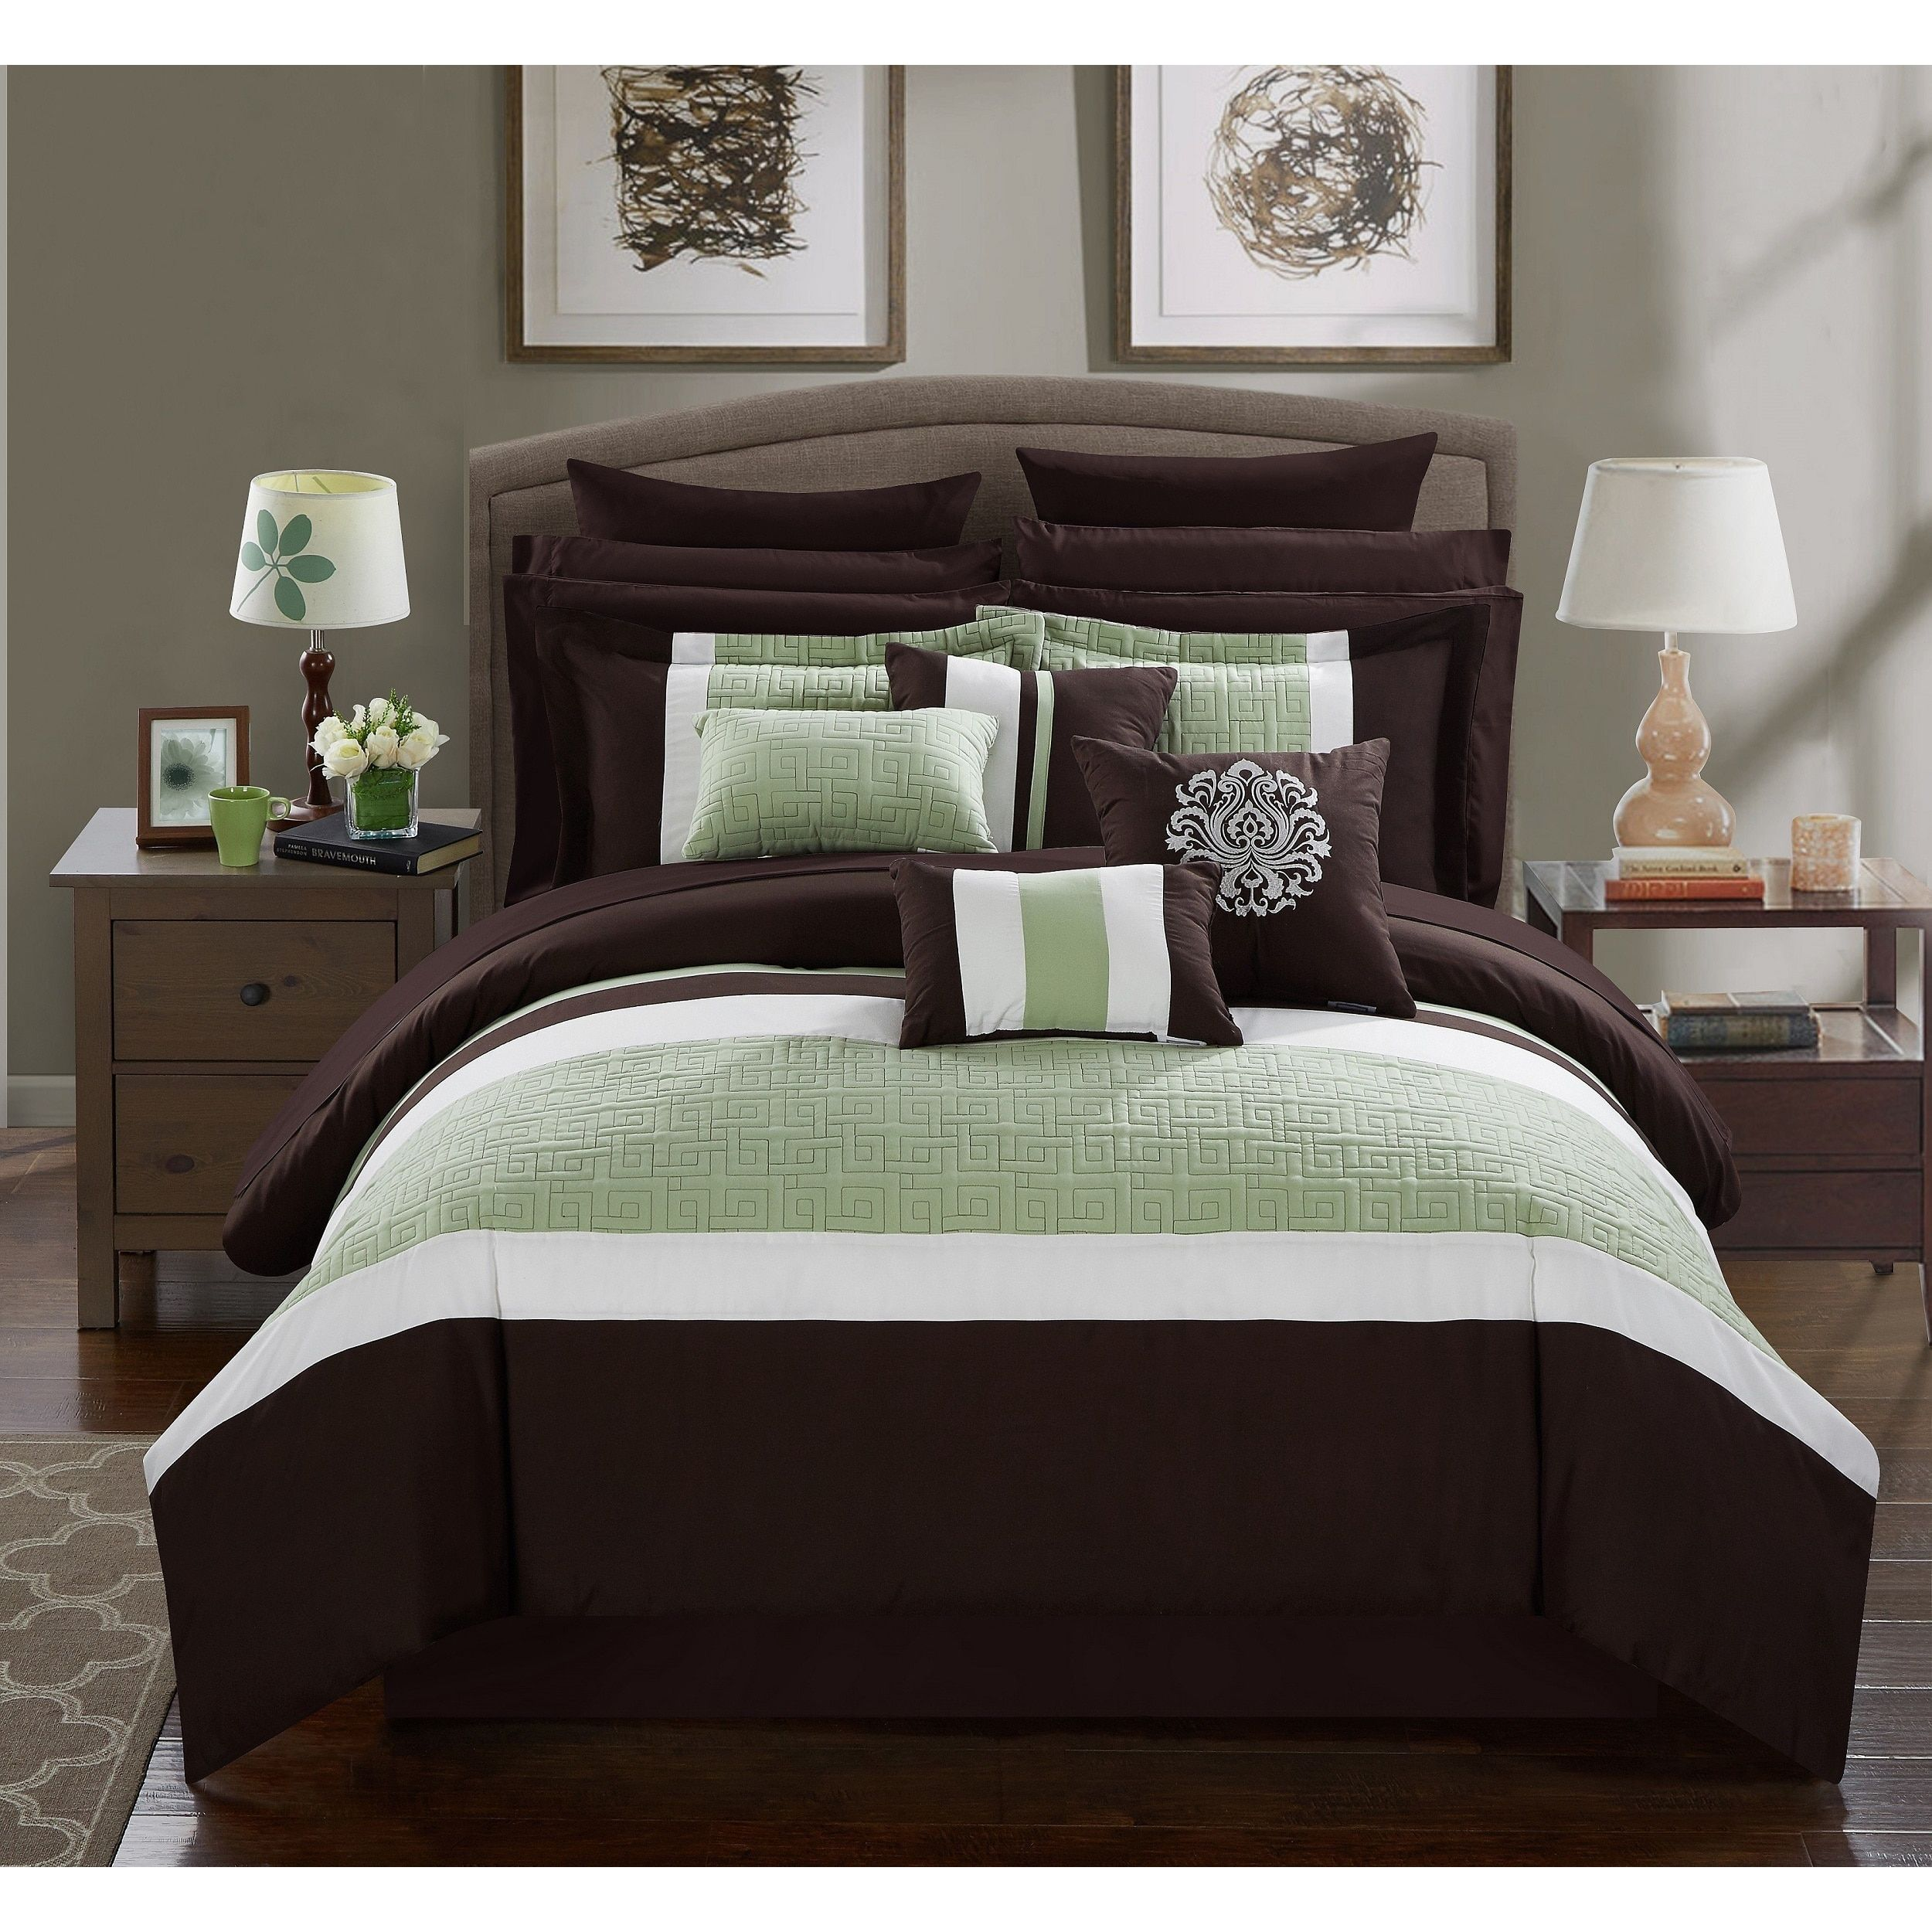 Chic Home 16 Piece King Bed In A Bag Comforter Set Queen Brown